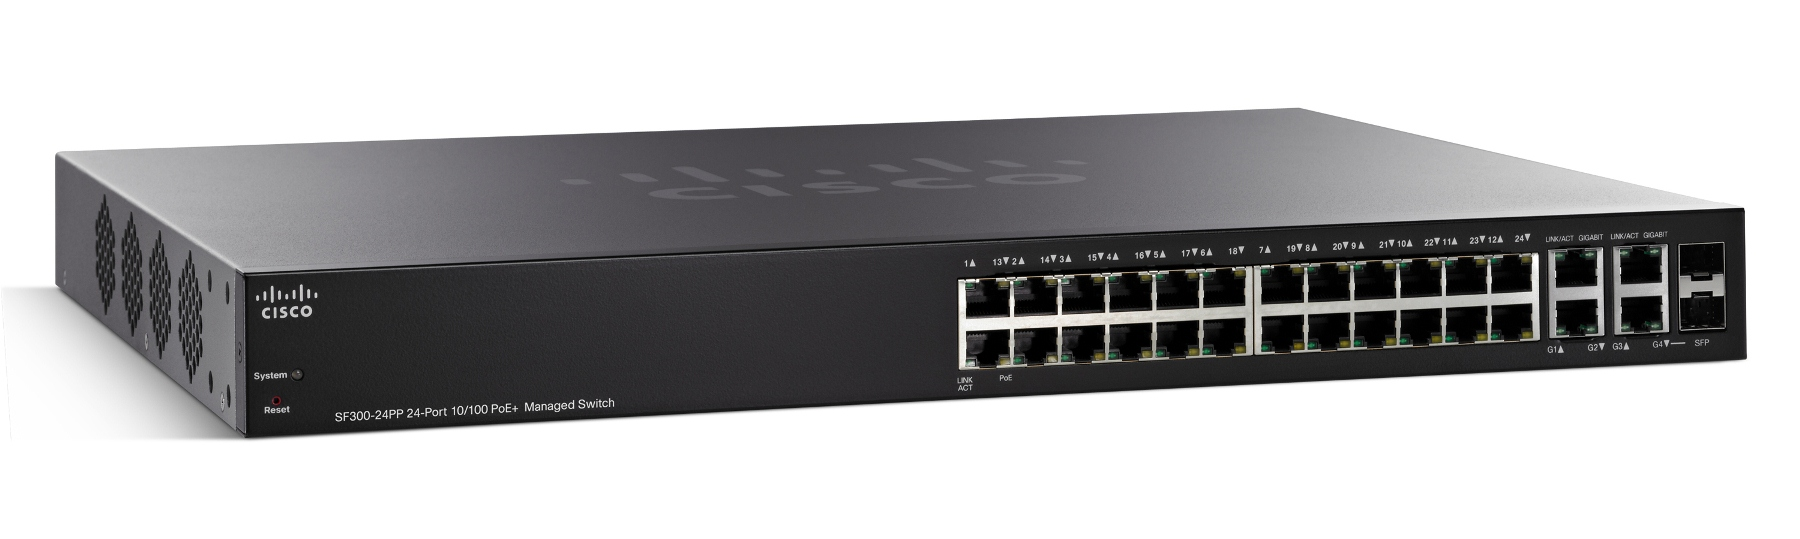 Cisco SF300-24PP 24-Port 10/100 PoE+ Managed Switch